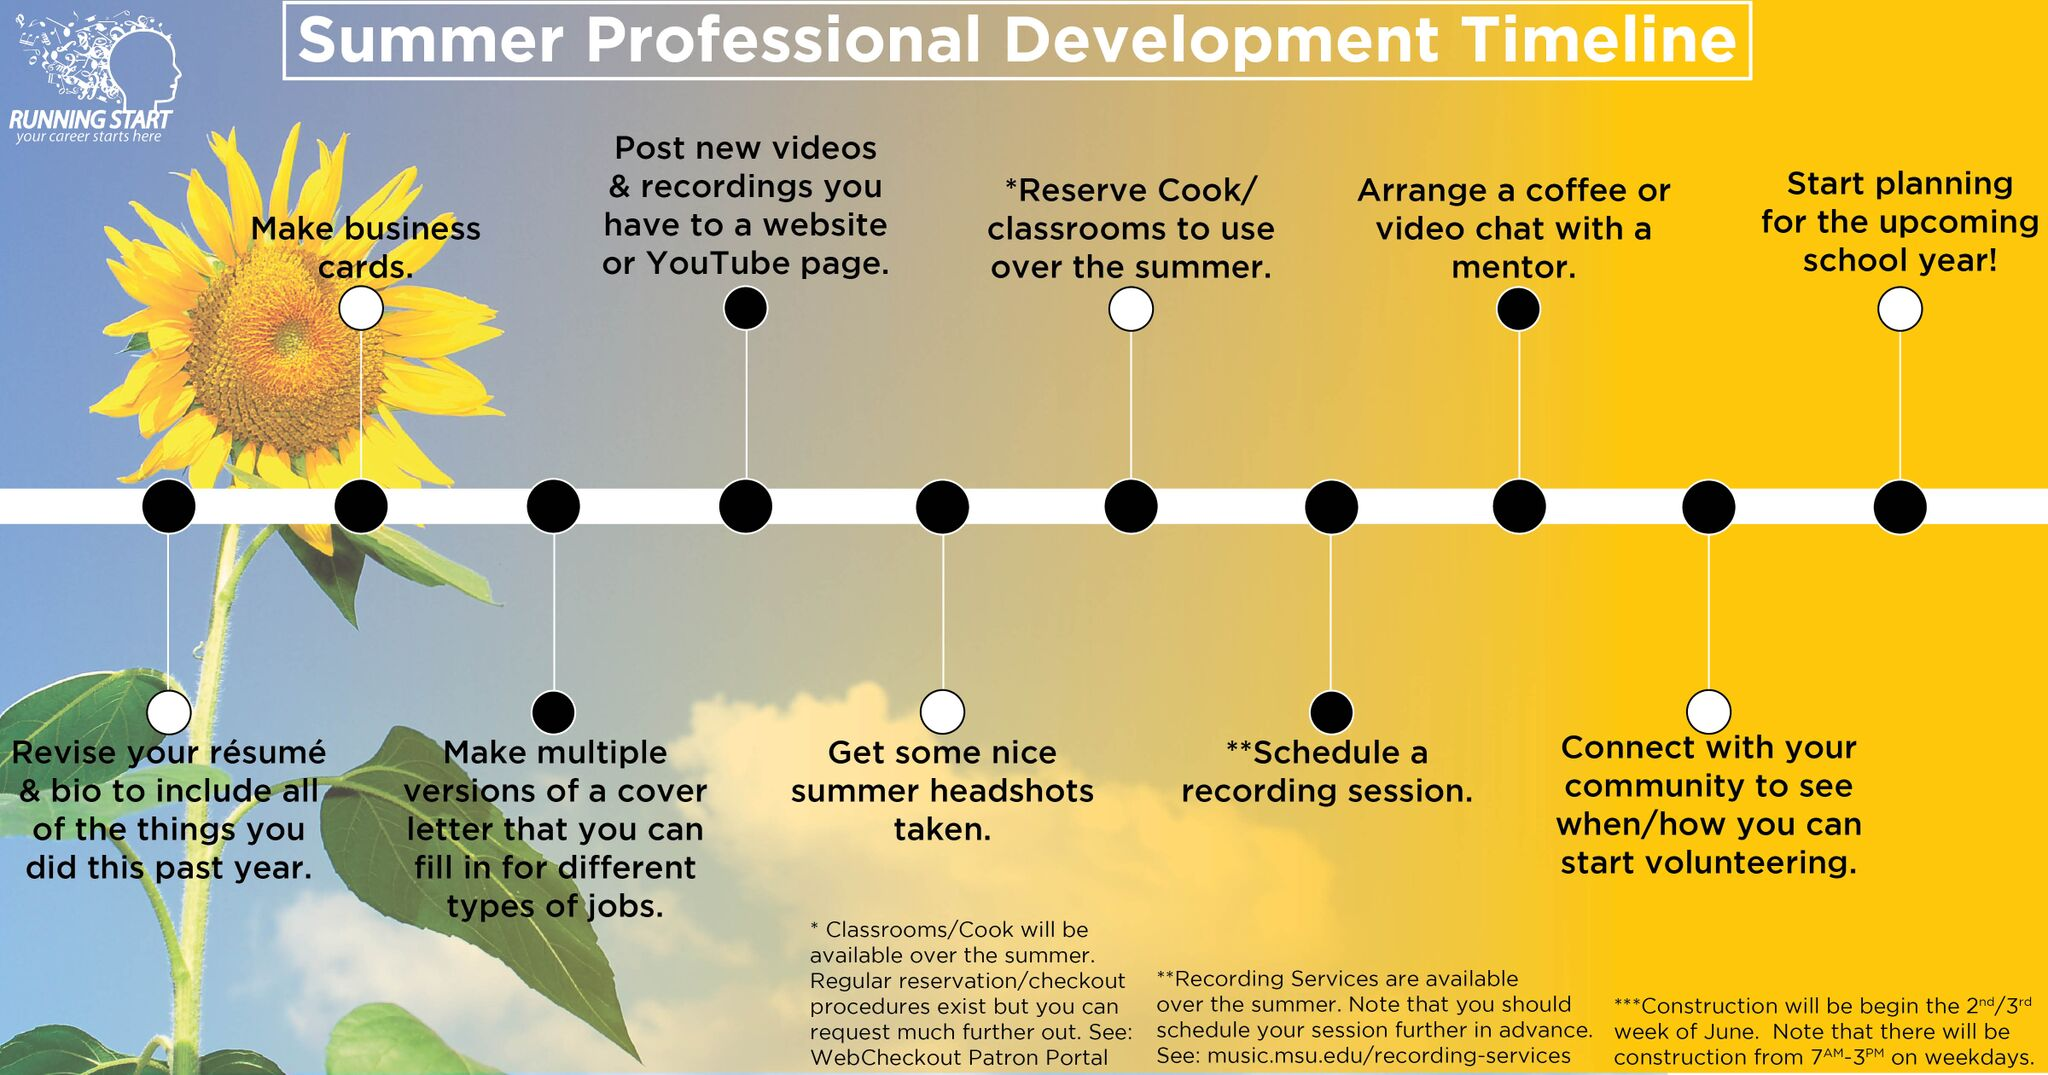 Looking to make the most of your summer? Here's a helpful timeline! image